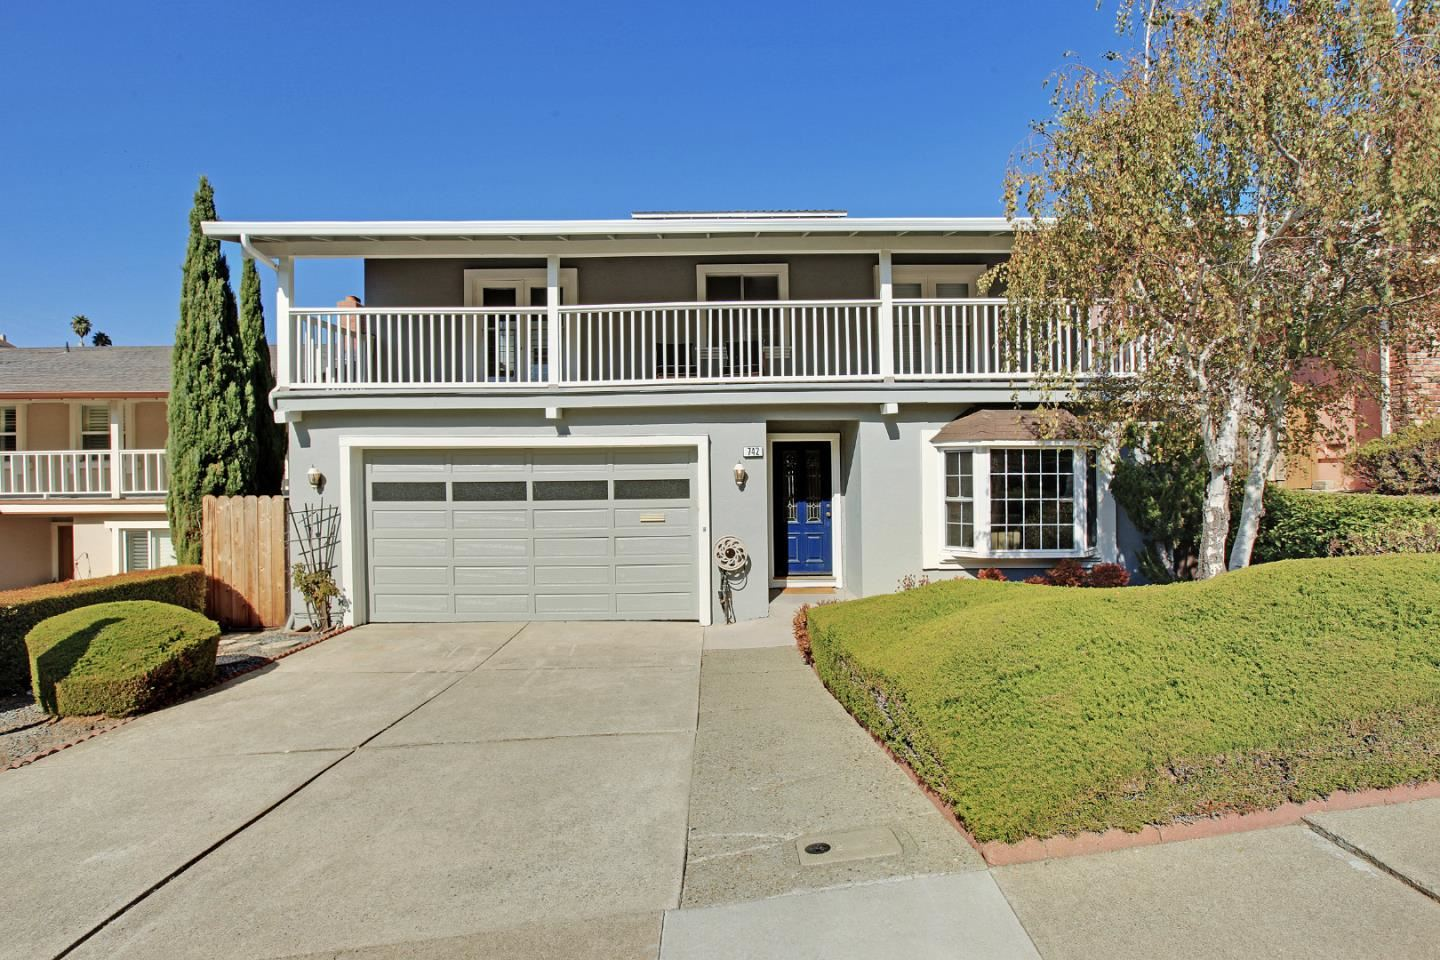 Photo for 742 Clearfield DR, MILLBRAE, CA 94030 (MLS # ML81817110)